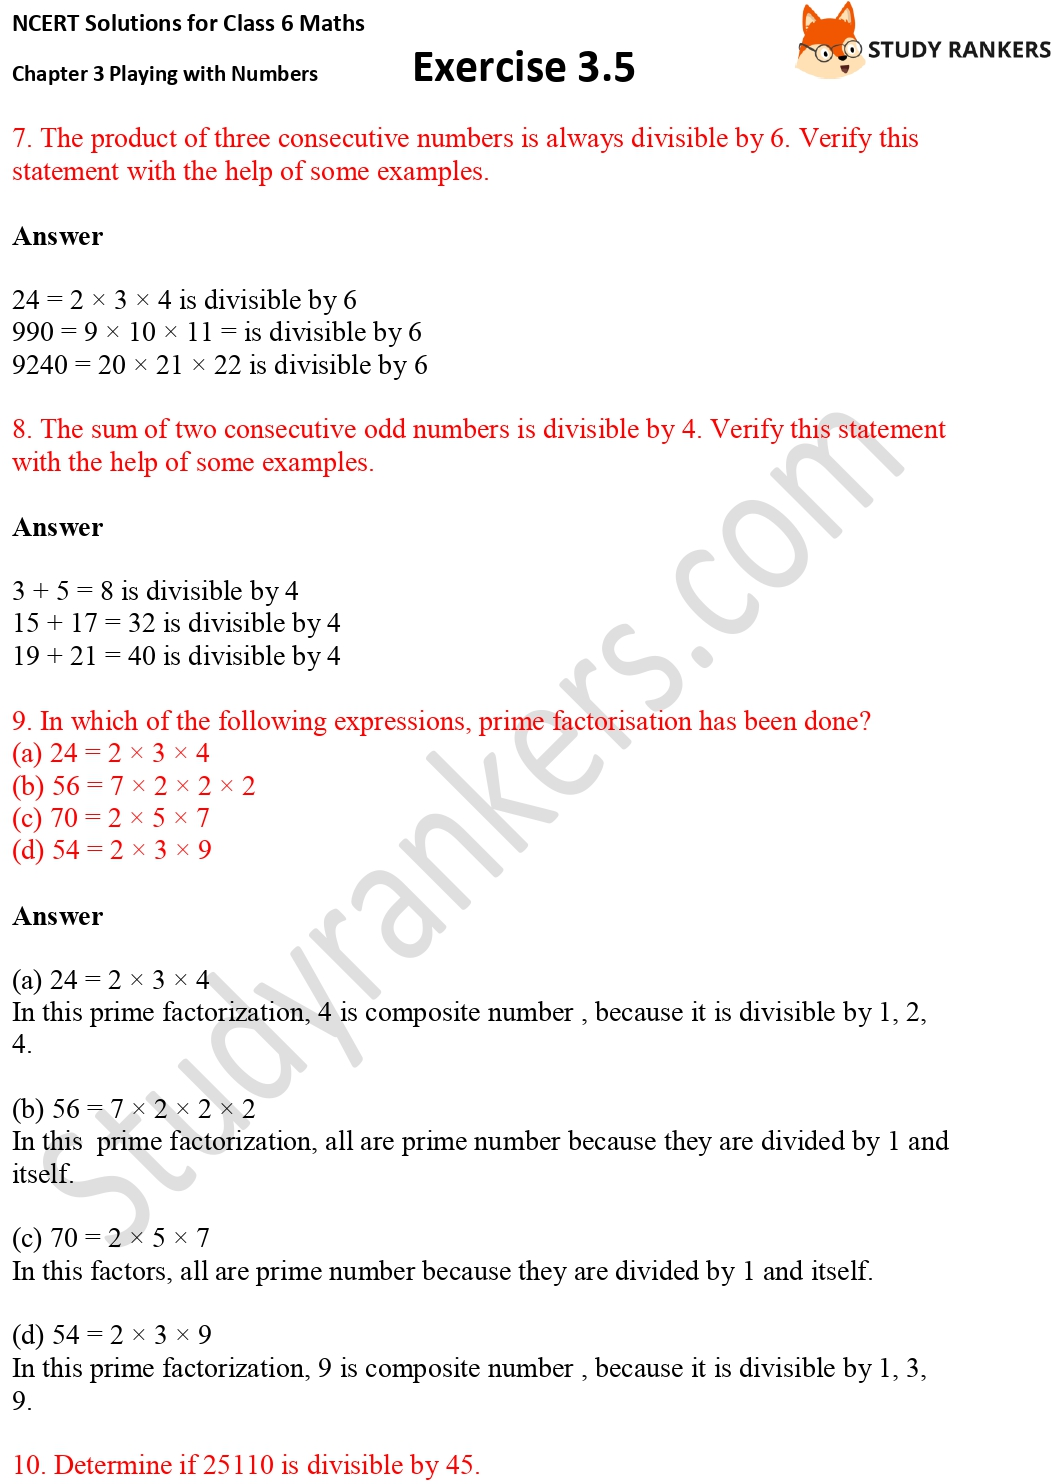 NCERT Solutions for Class 6 Maths Chapter 3 Playing with Numbers Exercise 3.5 Part 3